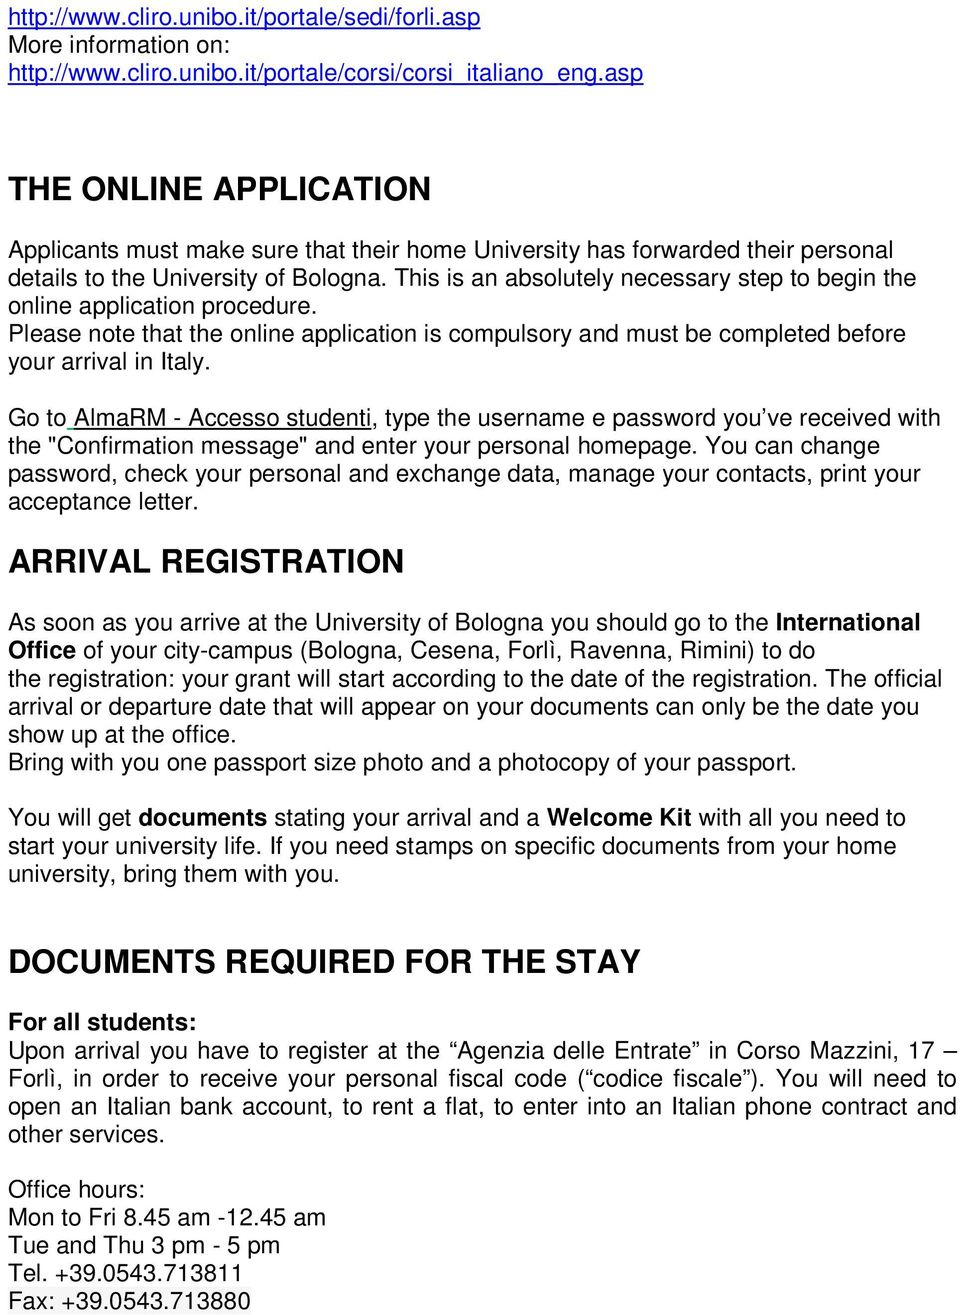 This is an absolutely necessary step to begin the online application procedure. Please note that the online application is compulsory and must be completed before your arrival in Italy.